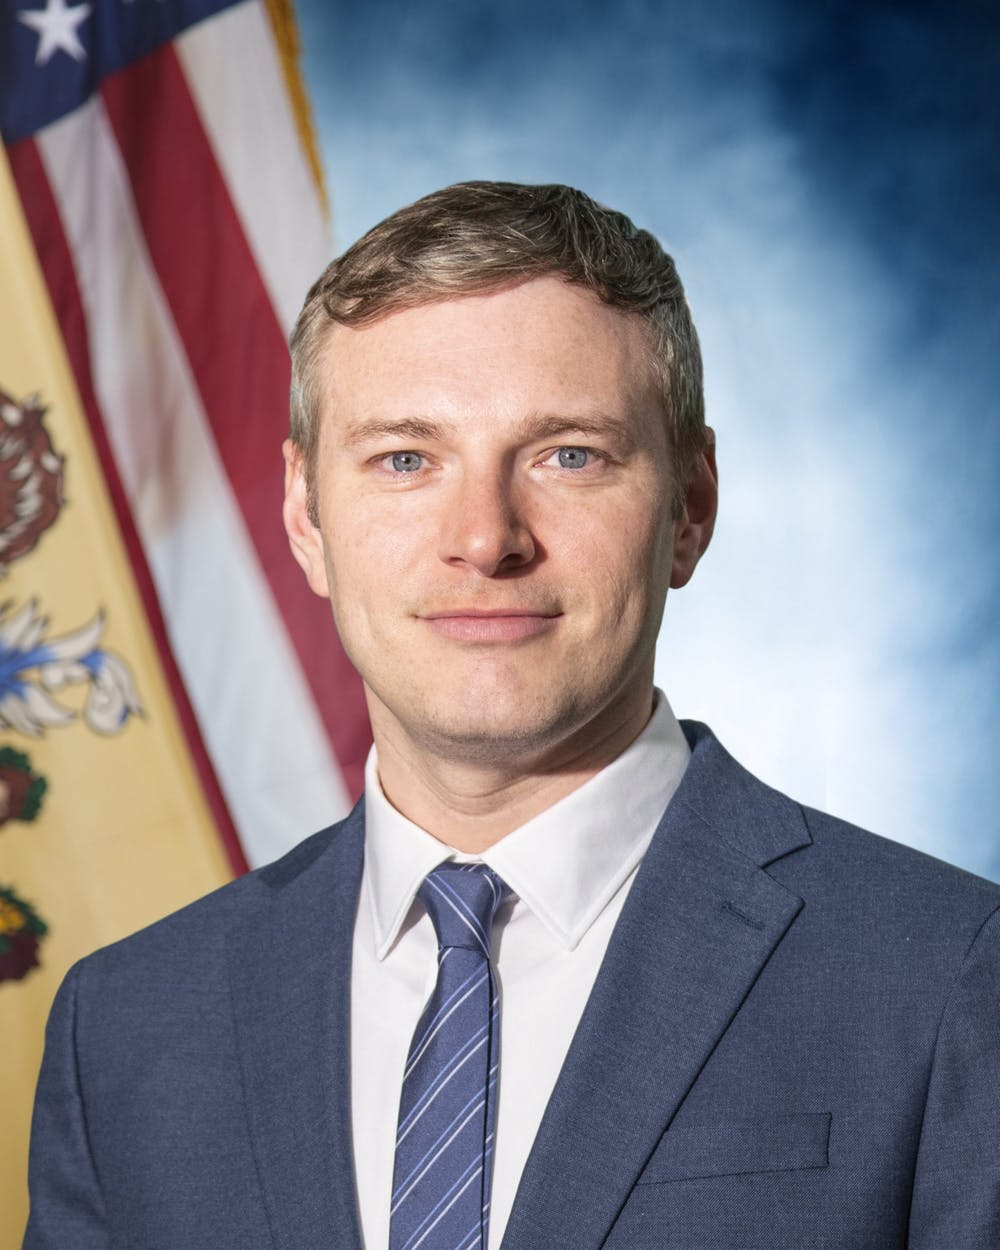 """<h5>Andrew Bruck, Acting Attorney General of New Jersey</h5> <h6>Courtesy of the New Jersey Office of the Attorney General <a href=""""https://www.njoag.gov/about/meet-acting-ag-bruck/andrew-bruck-headshot-3/"""" target=""""_self"""">website</a>.</h6>"""